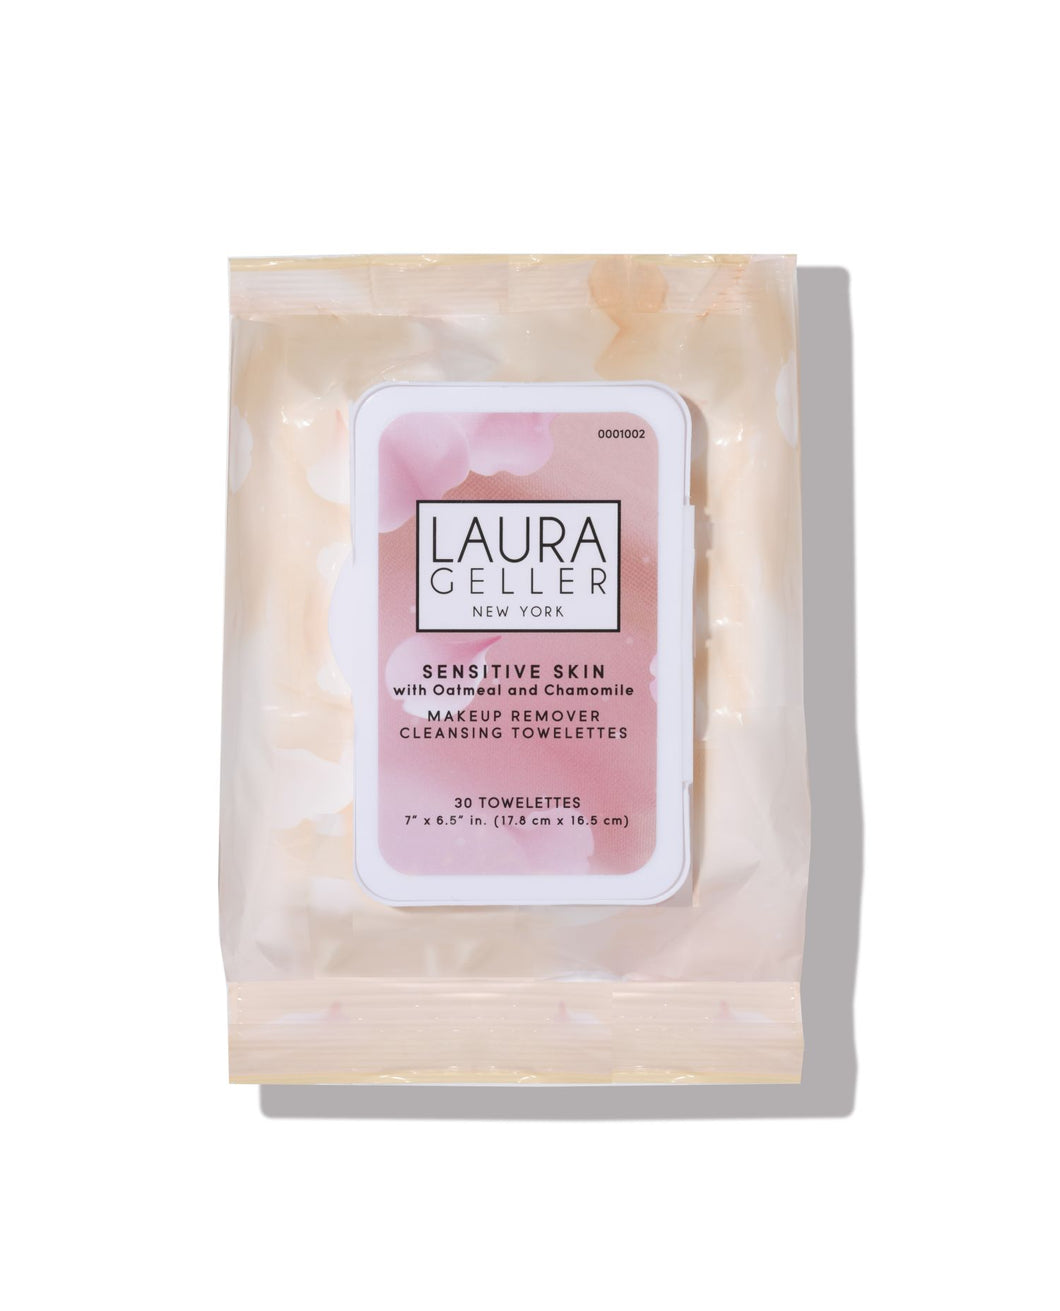 Make-Up Remover Cleansing Towelettes Sensitive Skin - with Oatmeal and Chamomile